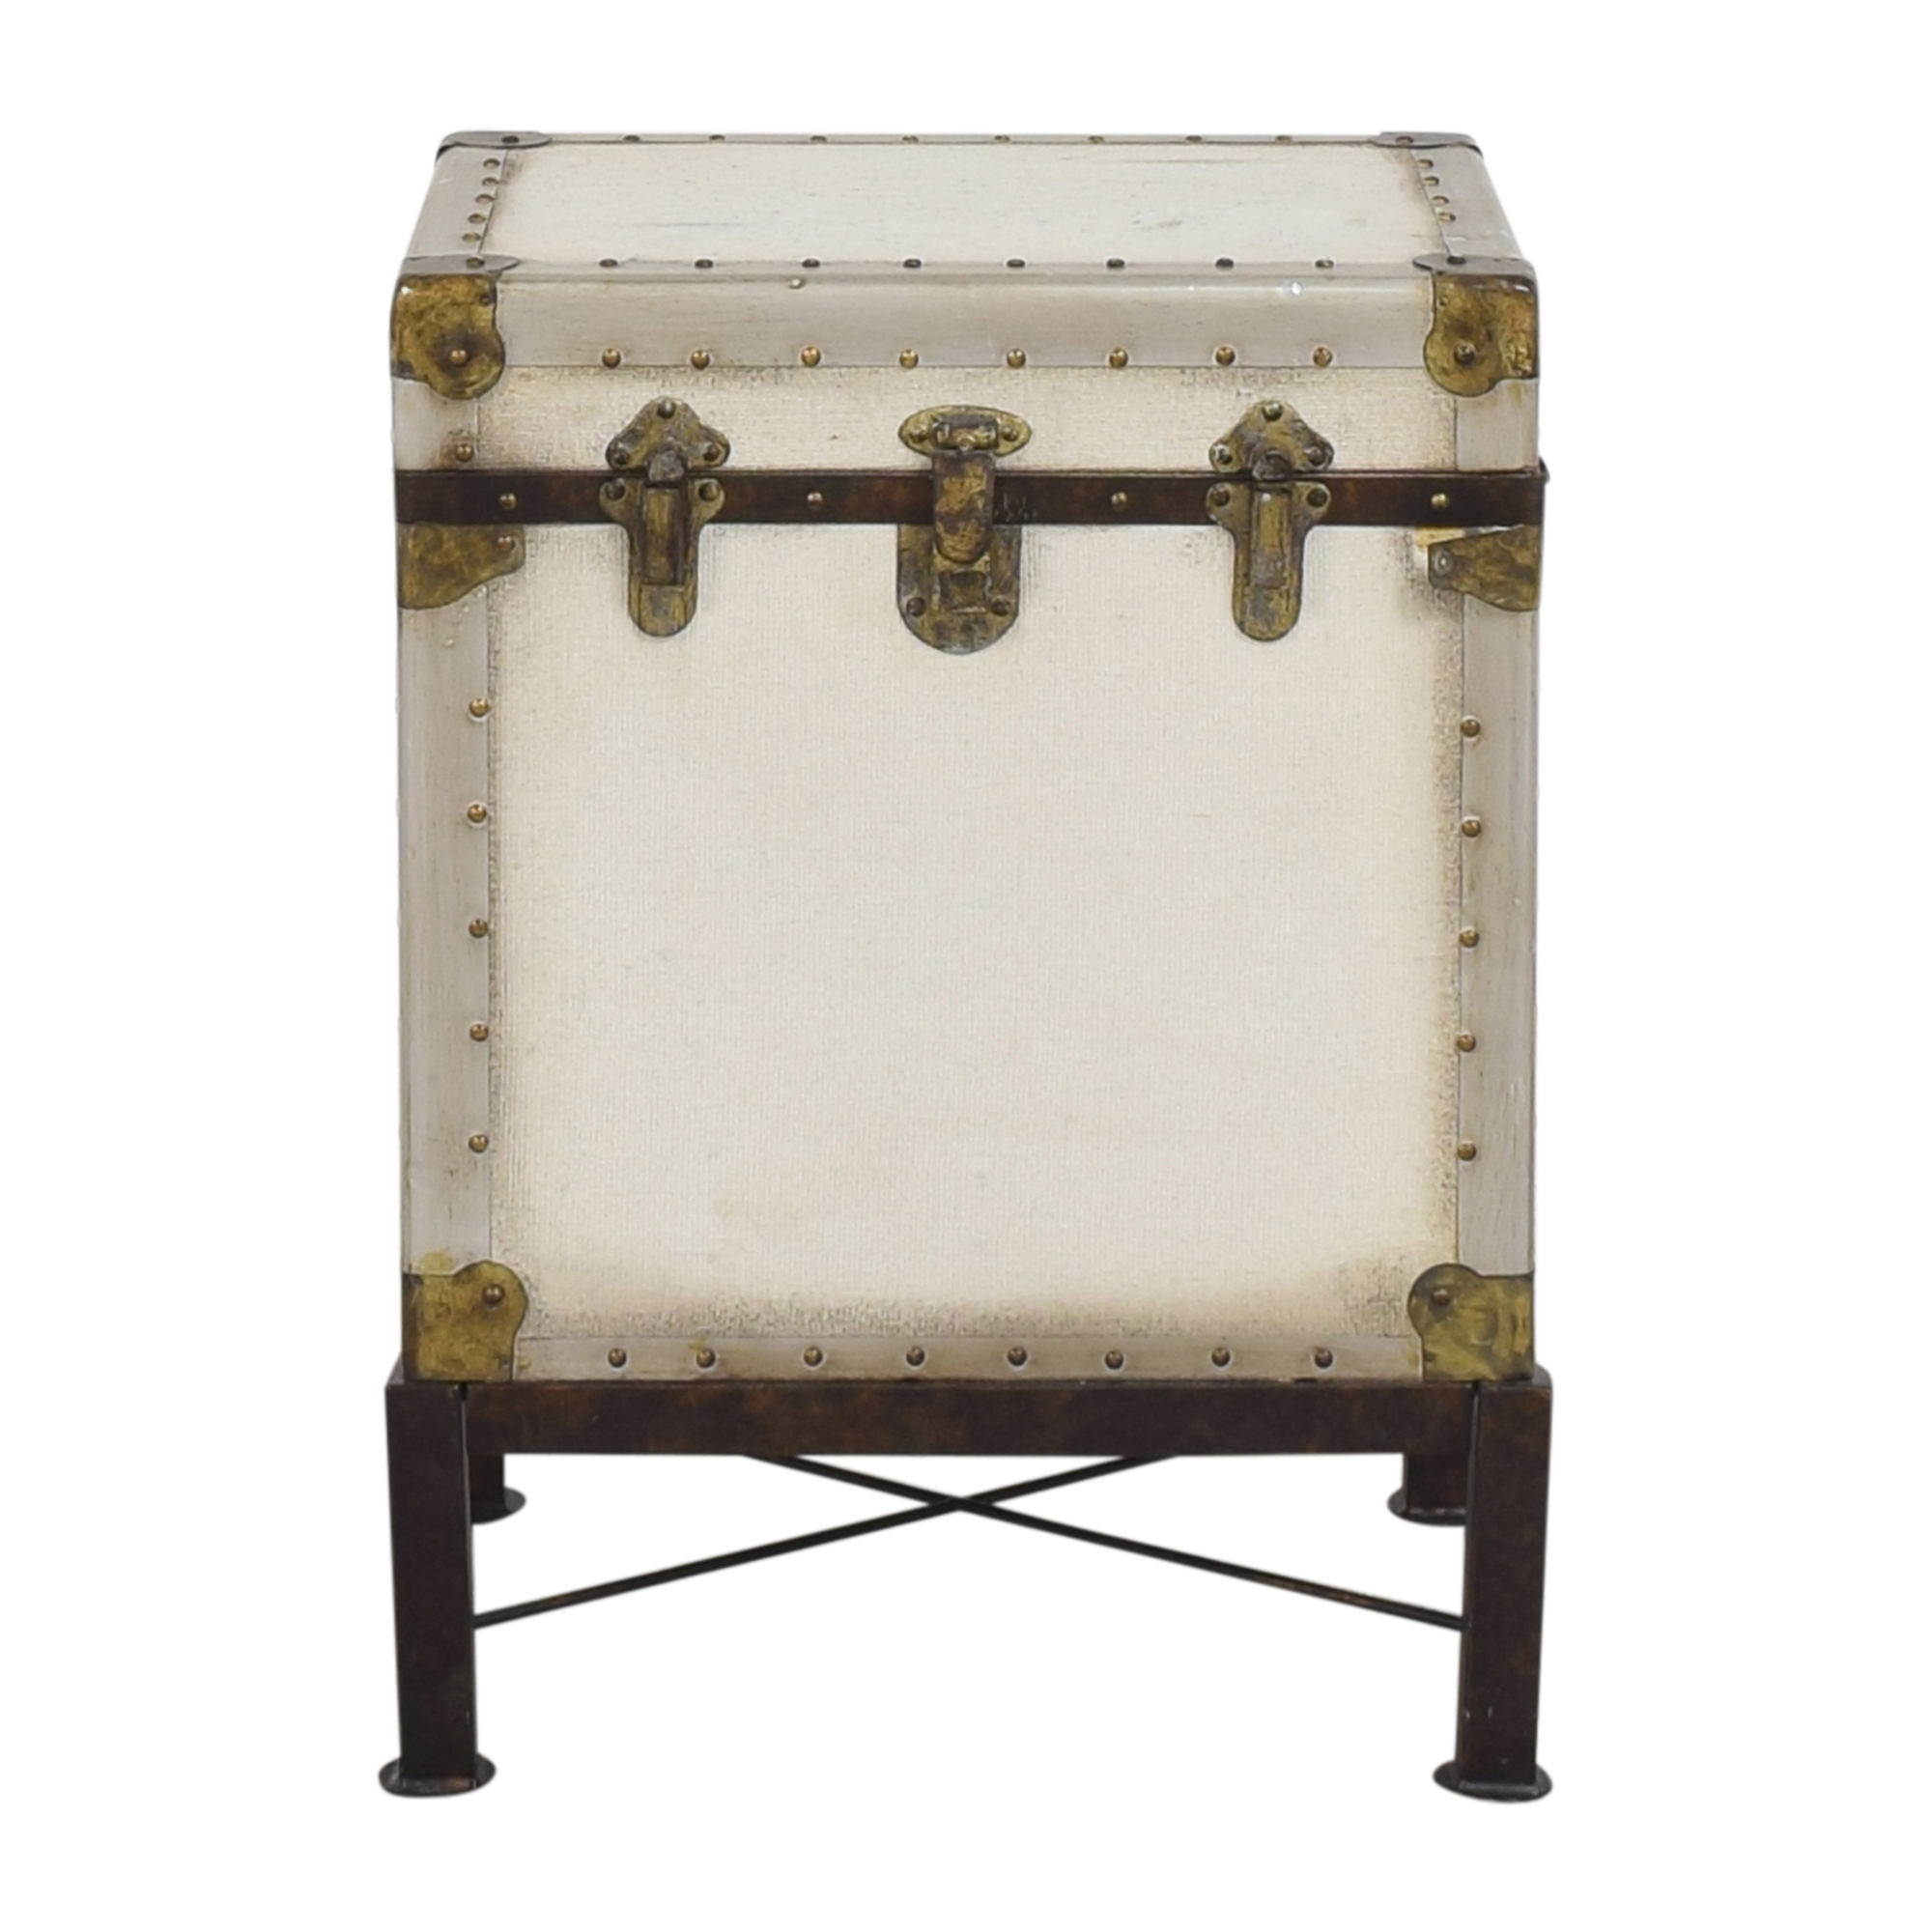 Pottery Barn Pottery Barn Ludlow Trunk End Table used